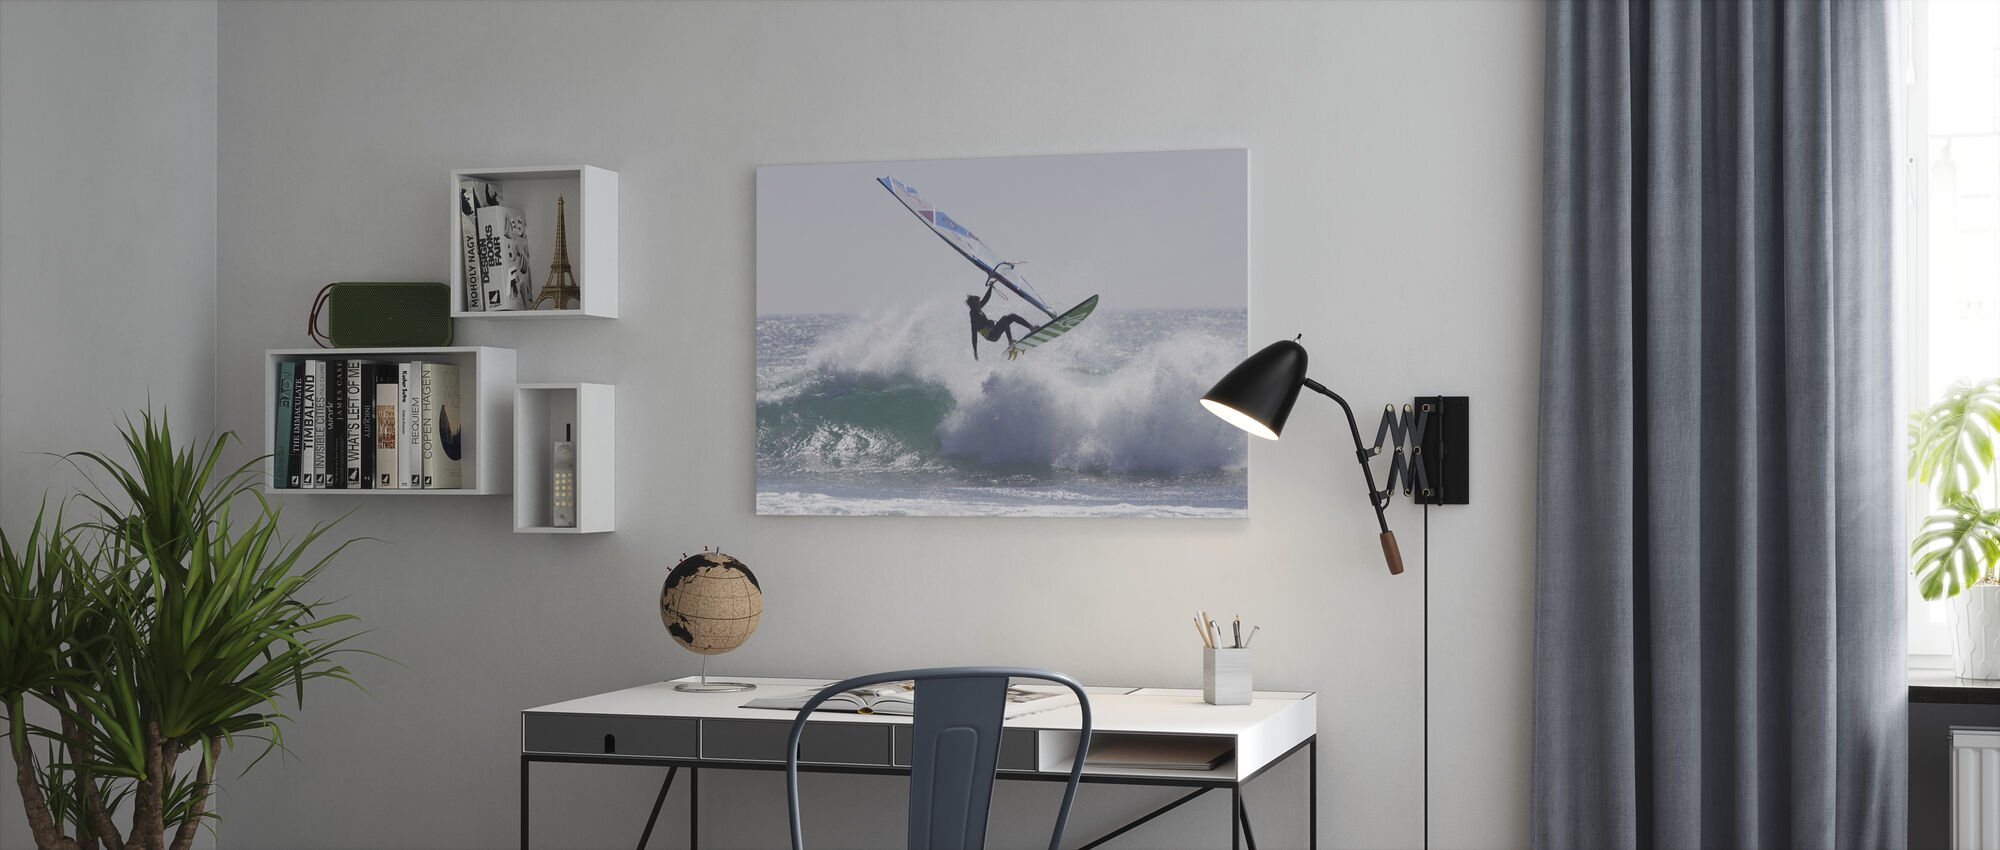 Windsurfing Jump - Canvas print - Office